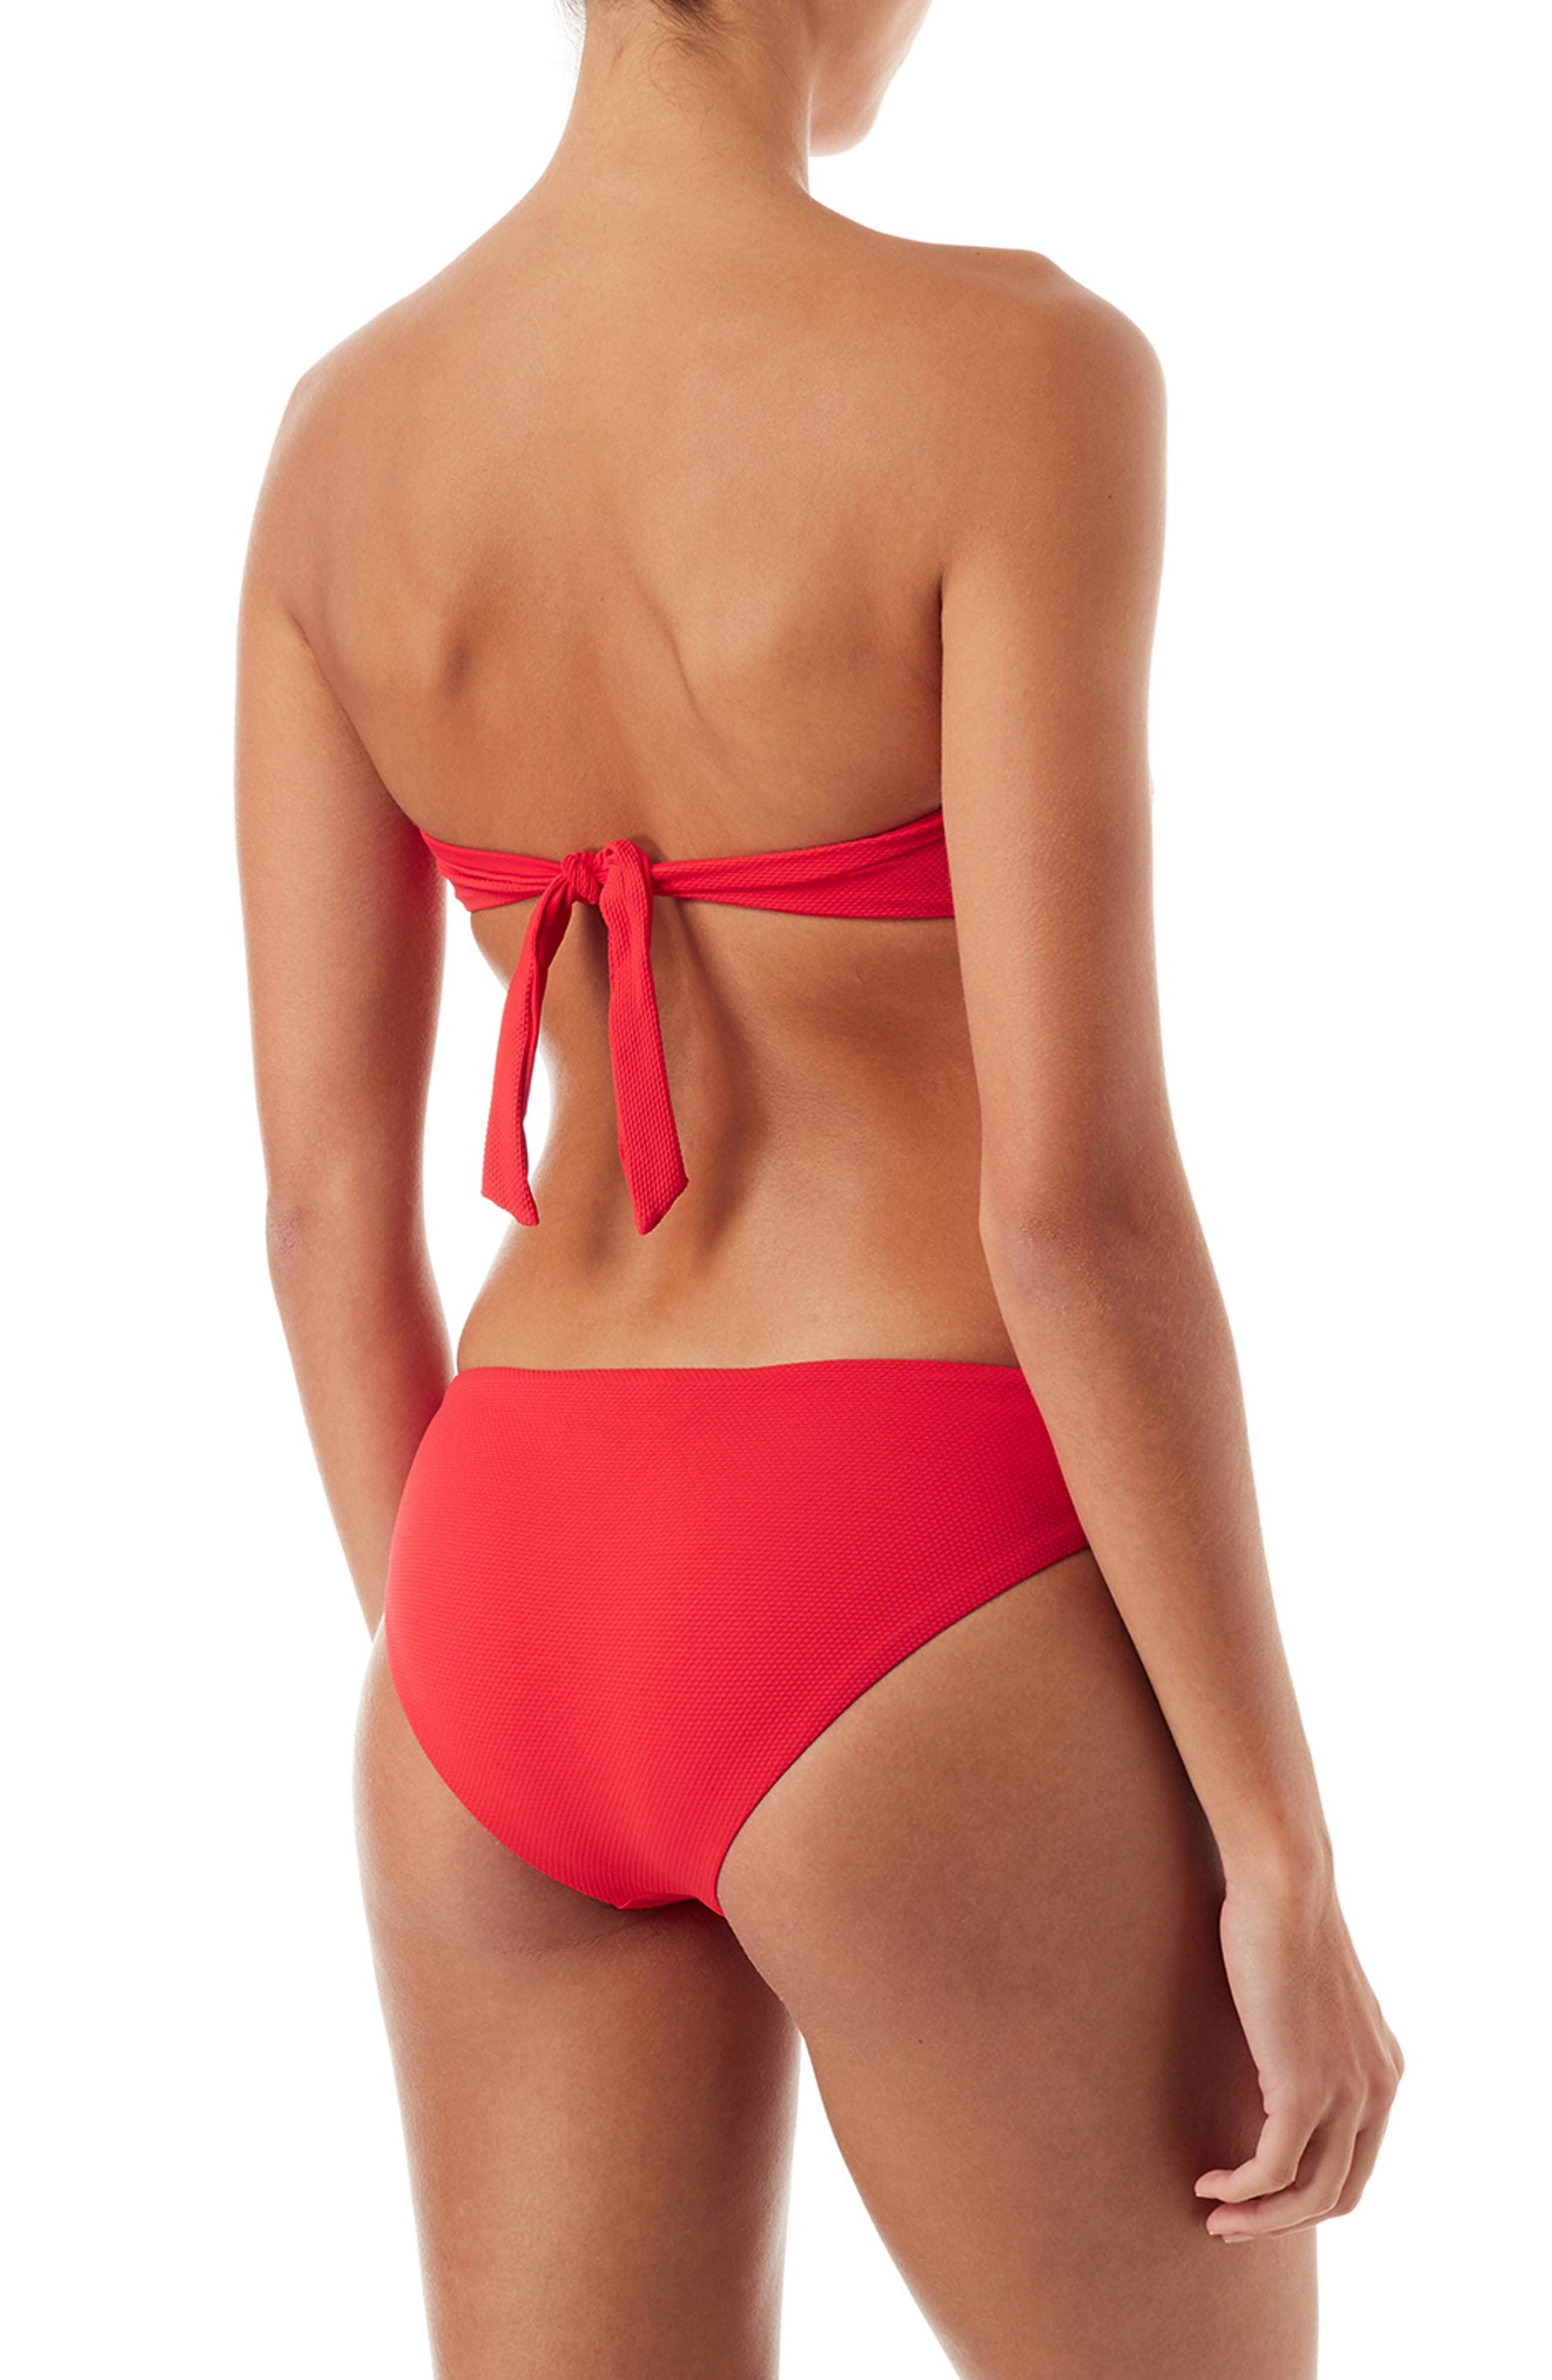 Angola Bikini Bottoms,                             Alternate thumbnail 4, color,                             PIQUE RED